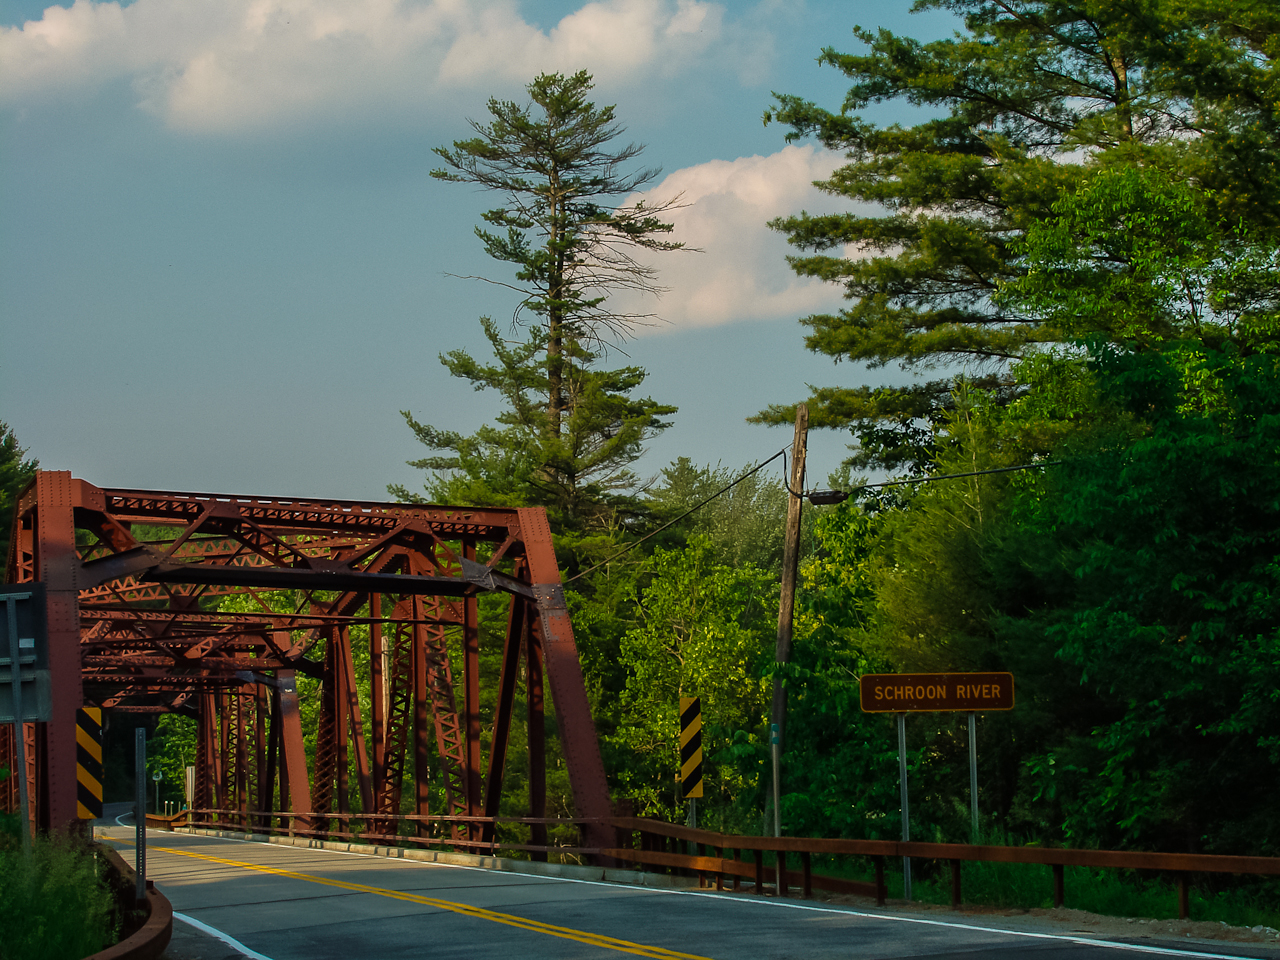 Bridge over the Schroon River